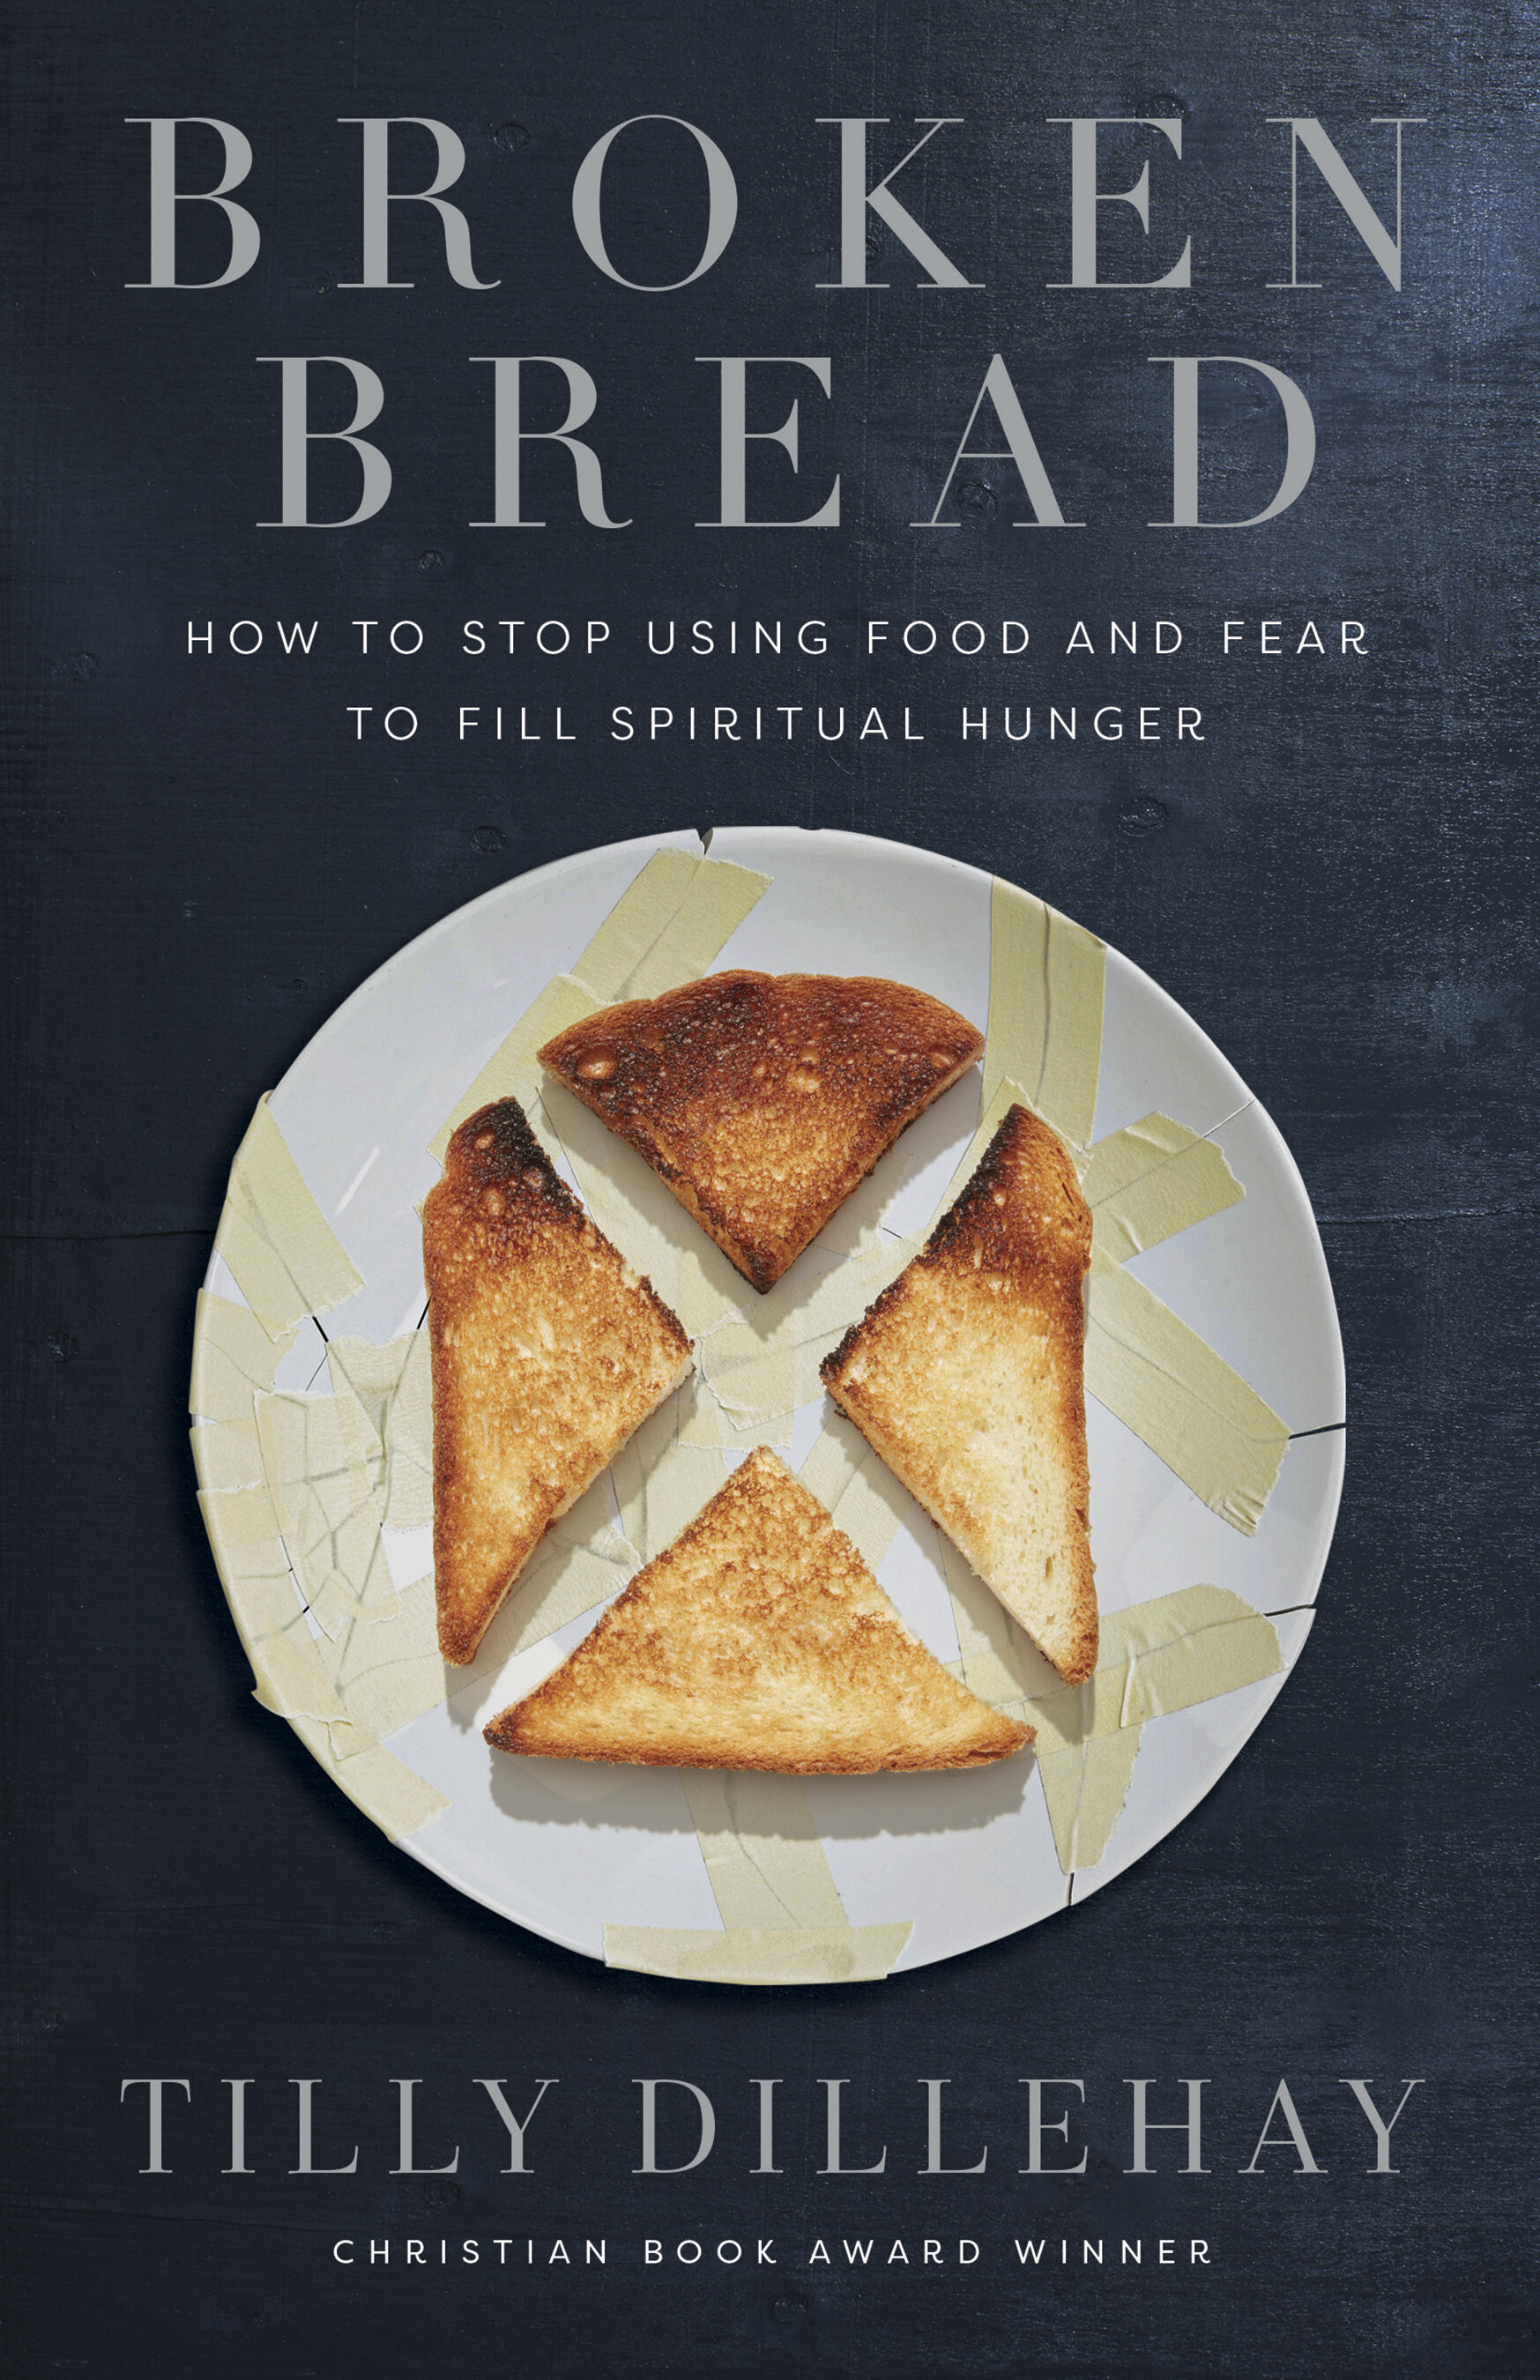 Broken Bread: How to Stop Using Food and Fear to Fill Spiritual Hunger